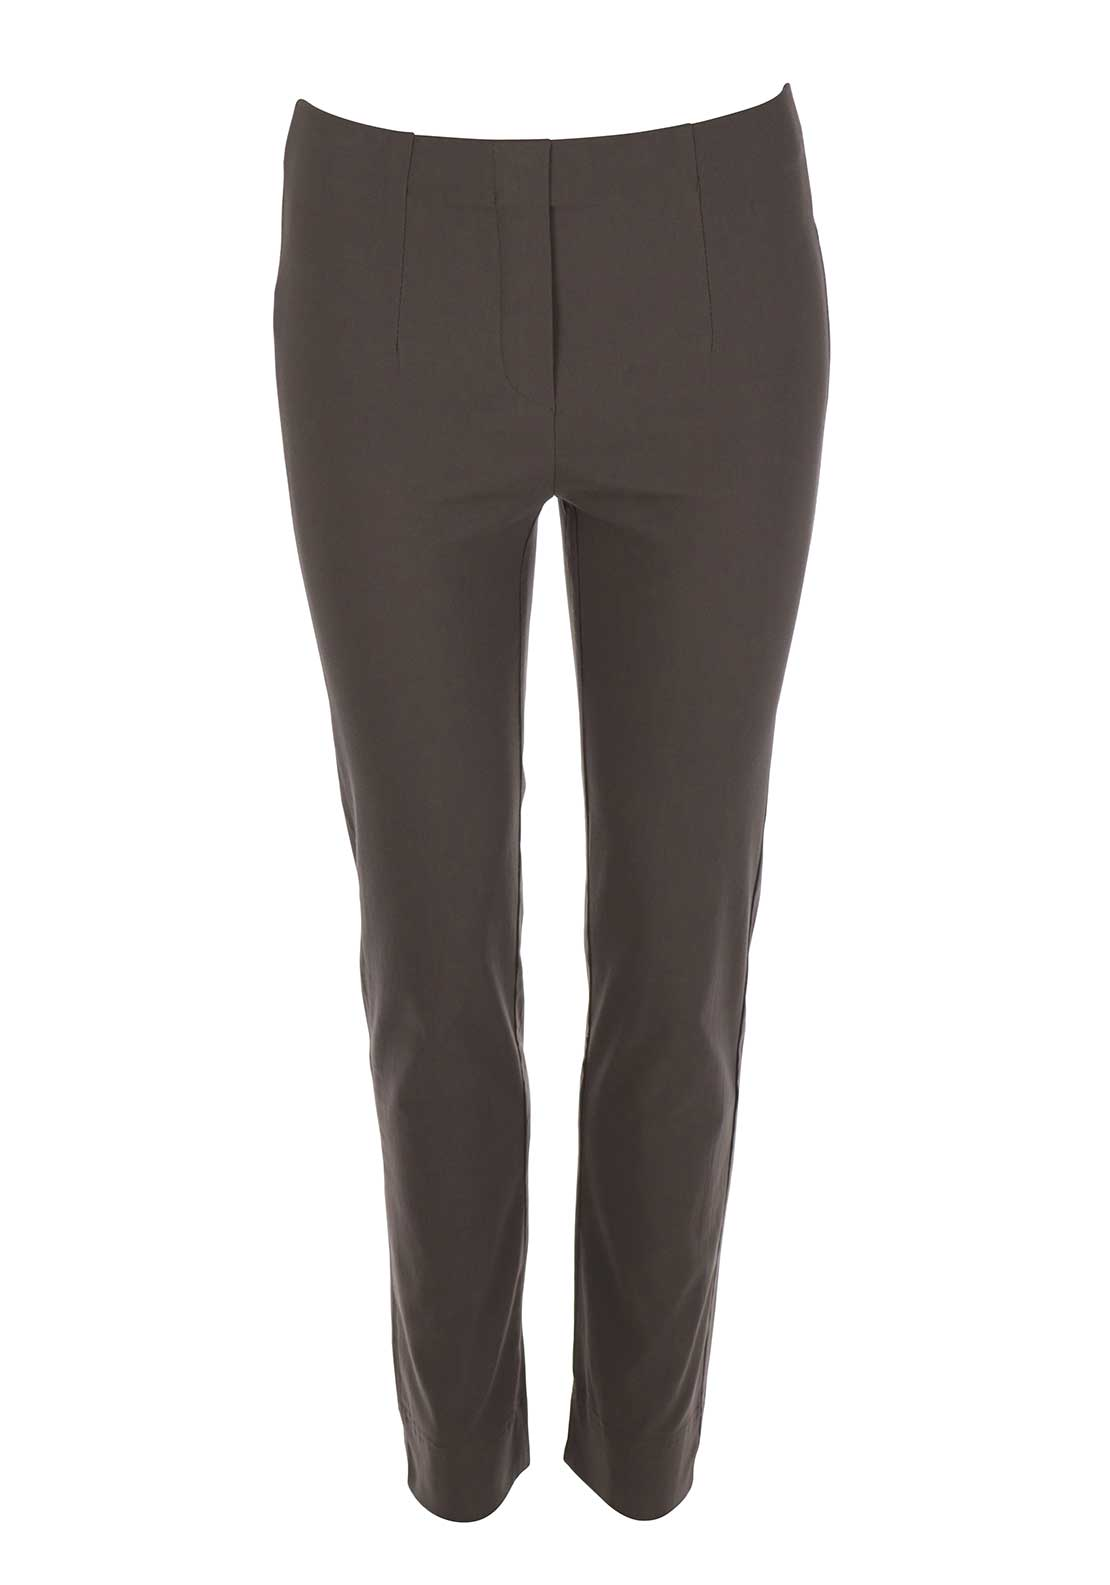 d.e.c.k. by Decollage Slim Leg Cropped Trousers, Mocha Brown